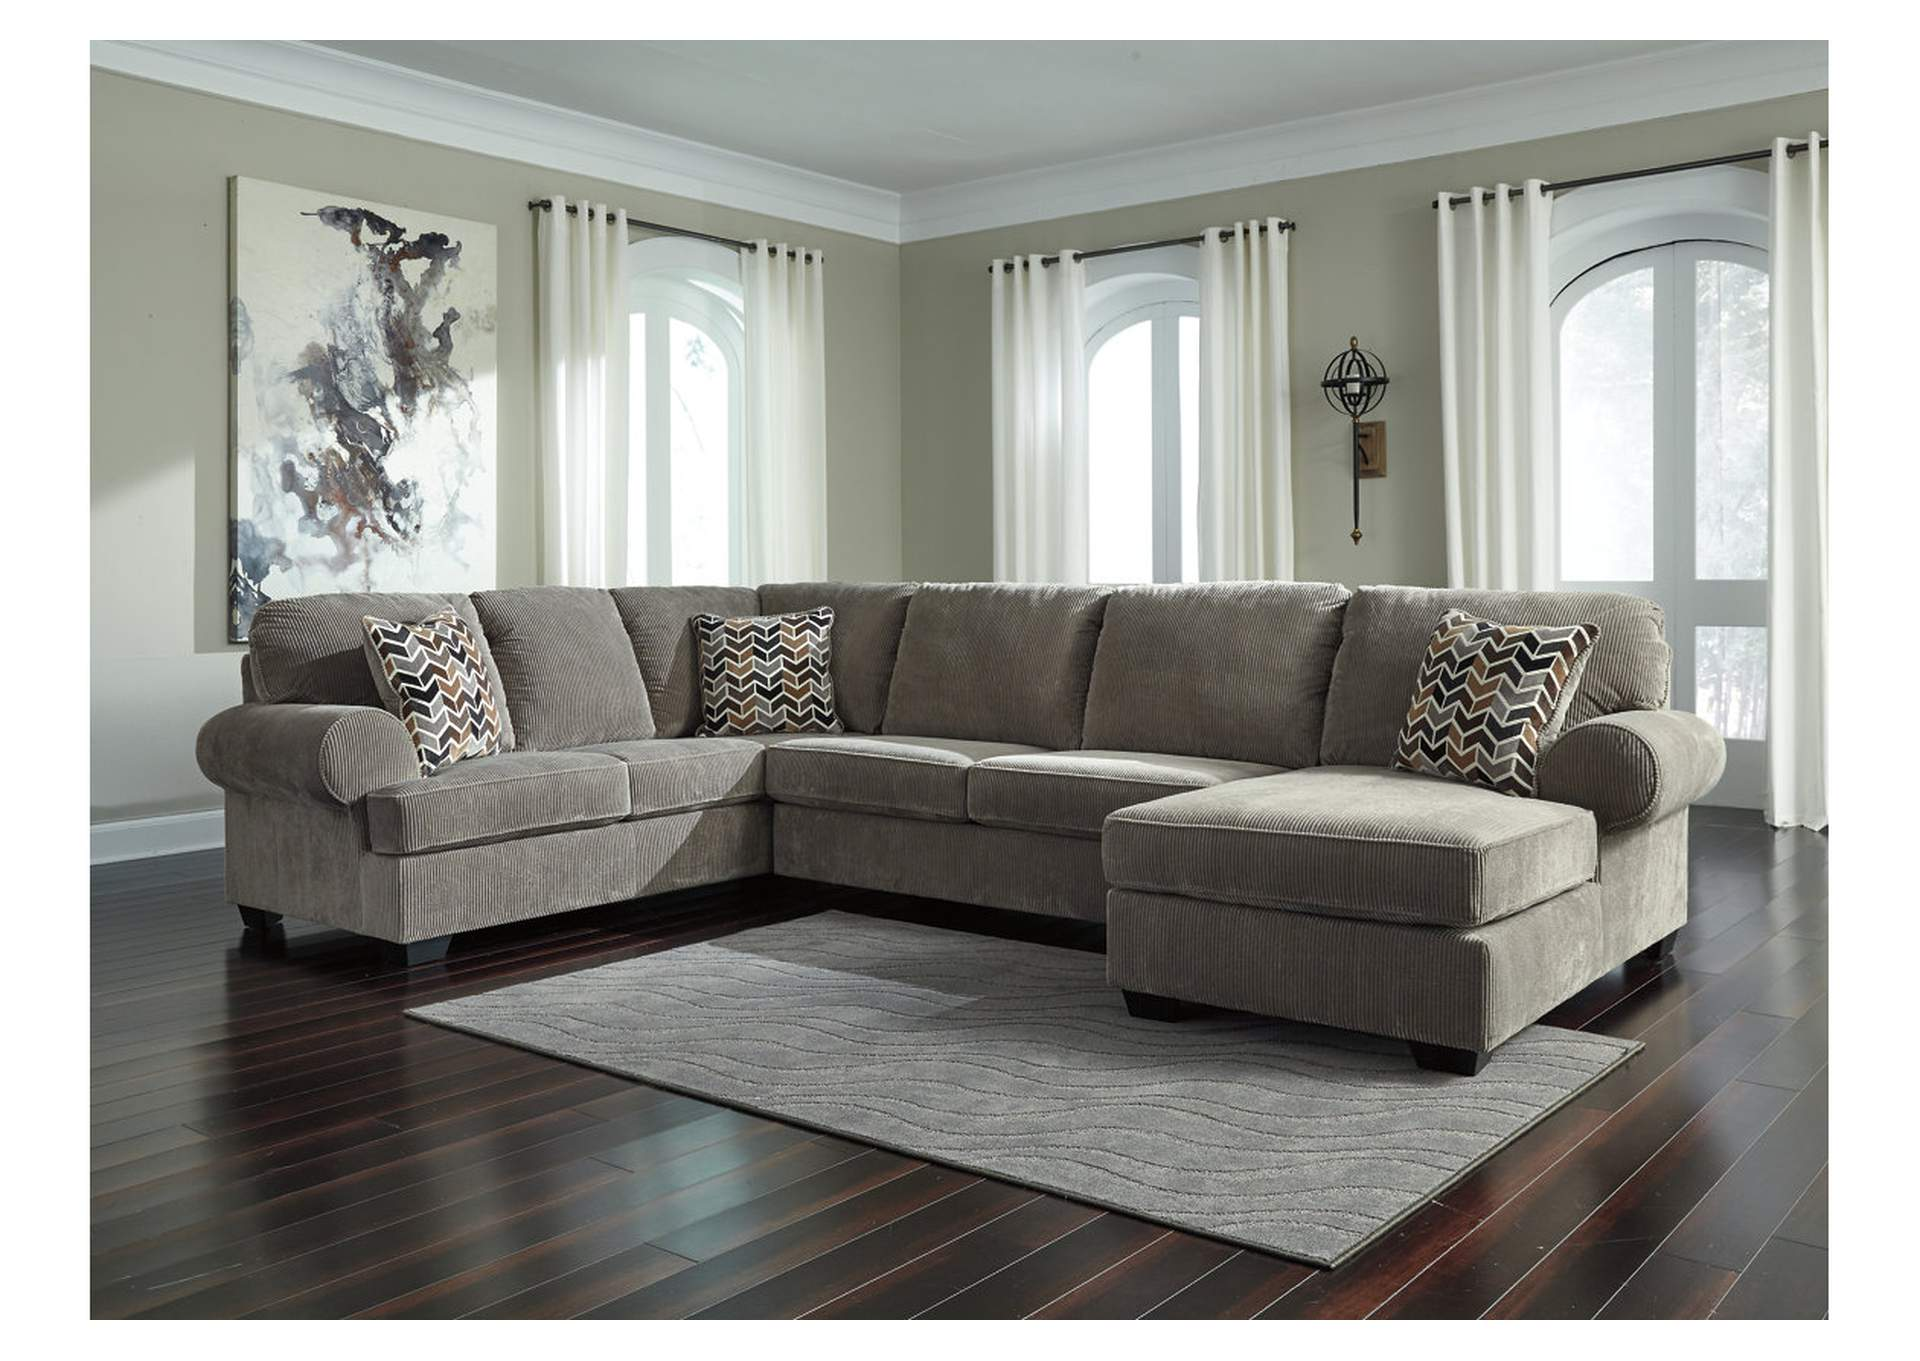 Jinllingsly Gray Left Facing Sofa Sectional,Signature Design By Ashley